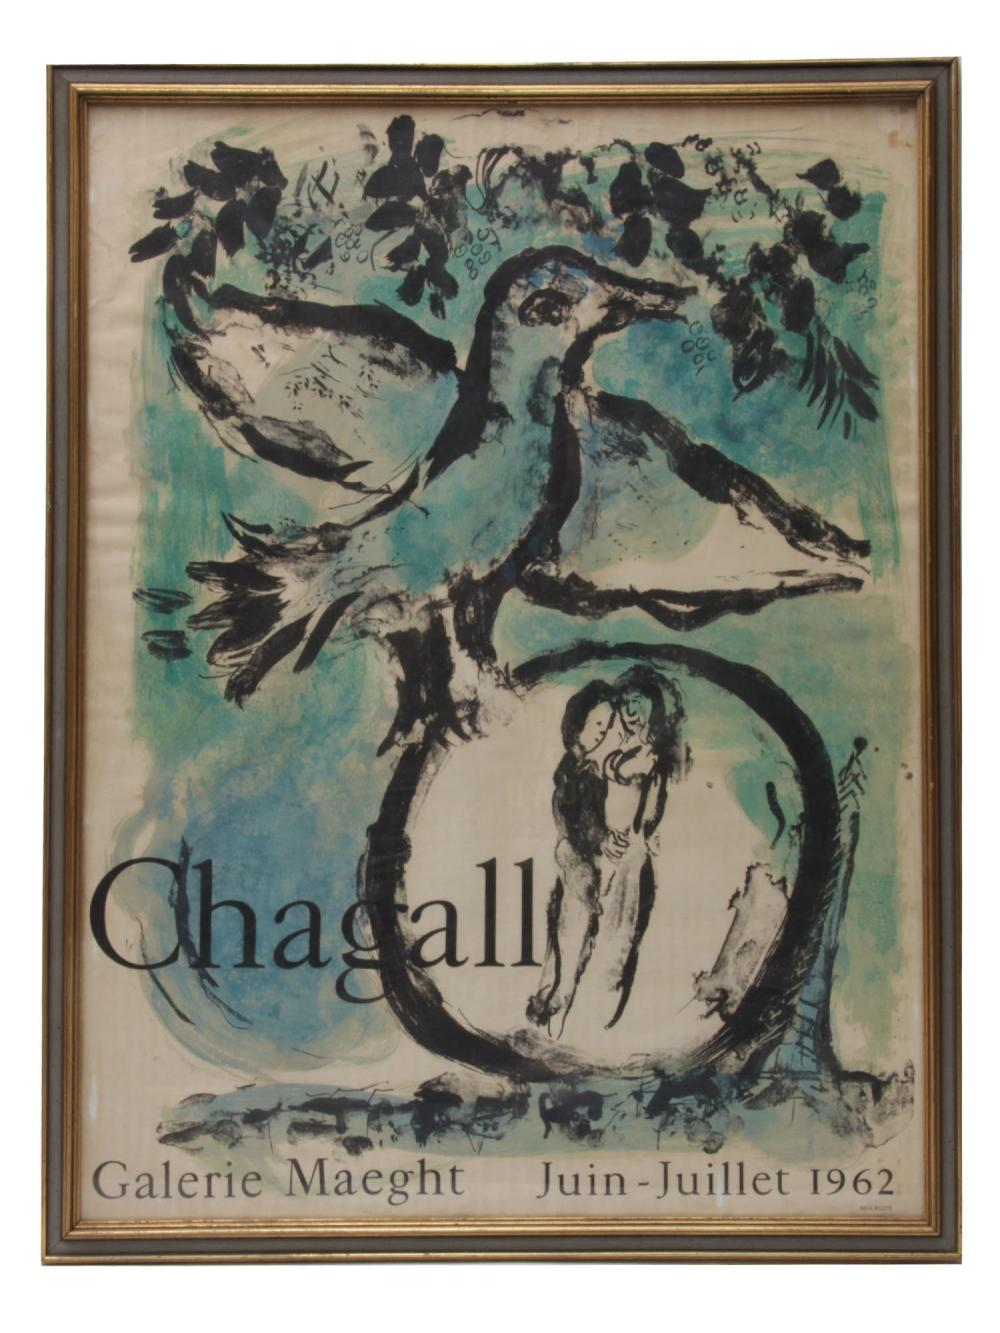 A VINTAGE GALERIE MAEGHT POSTER MARC CHAGALL